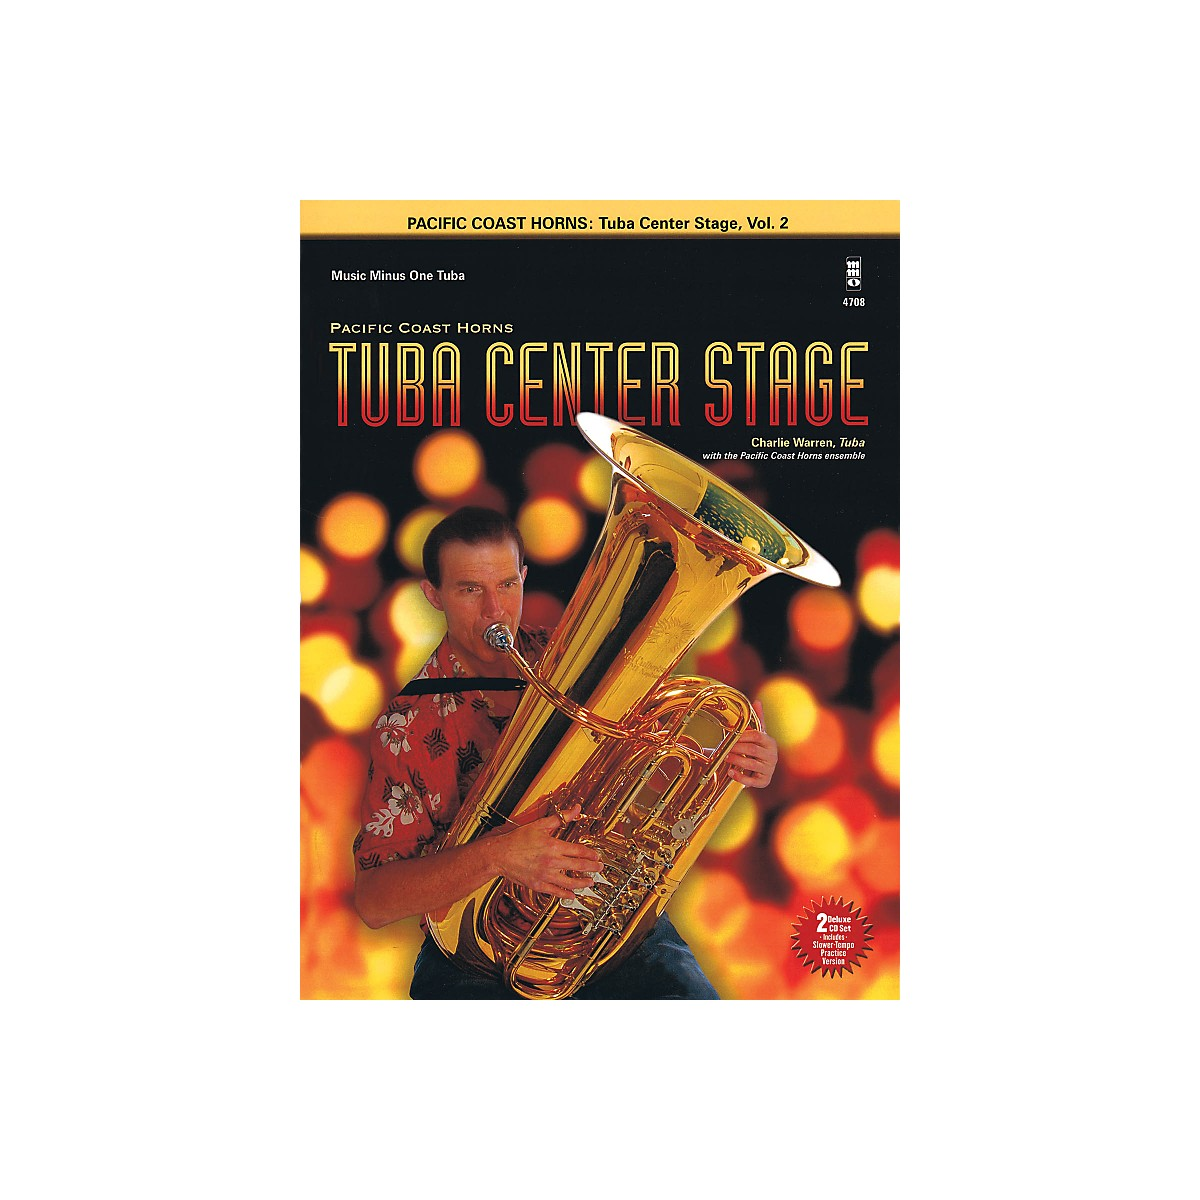 Hal Leonard Pacific Coast Horns - Tuba Center Stage, Vol. 2 Book/2CD